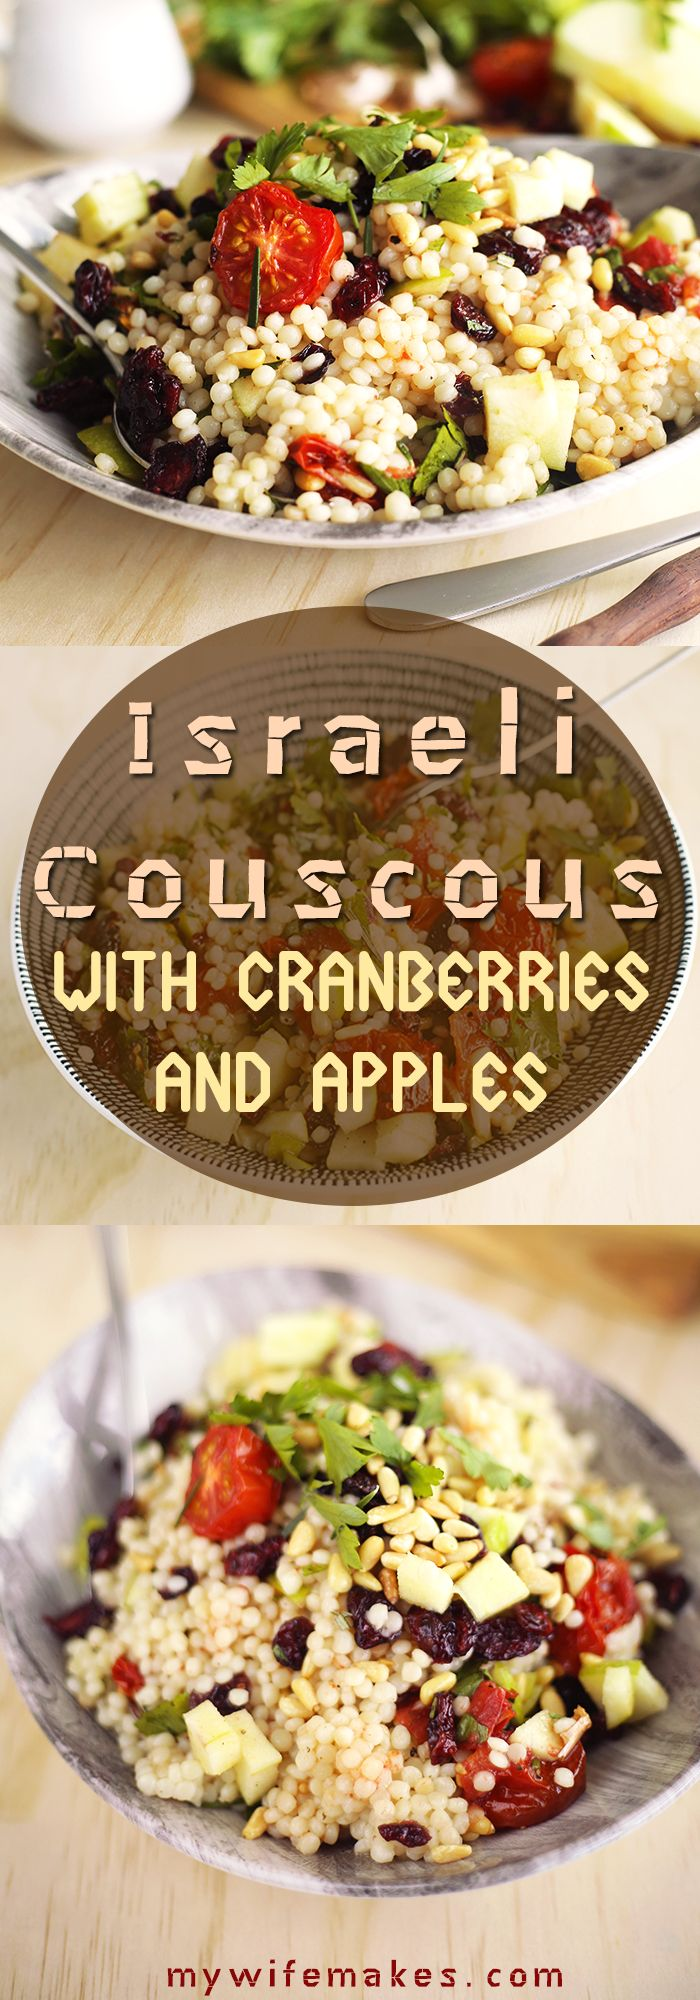 Israeli Couscous: Apples, Cranberries, Pine Nuts, Herbs and Roasted Tomatoes. Healthy, light, Vegan.